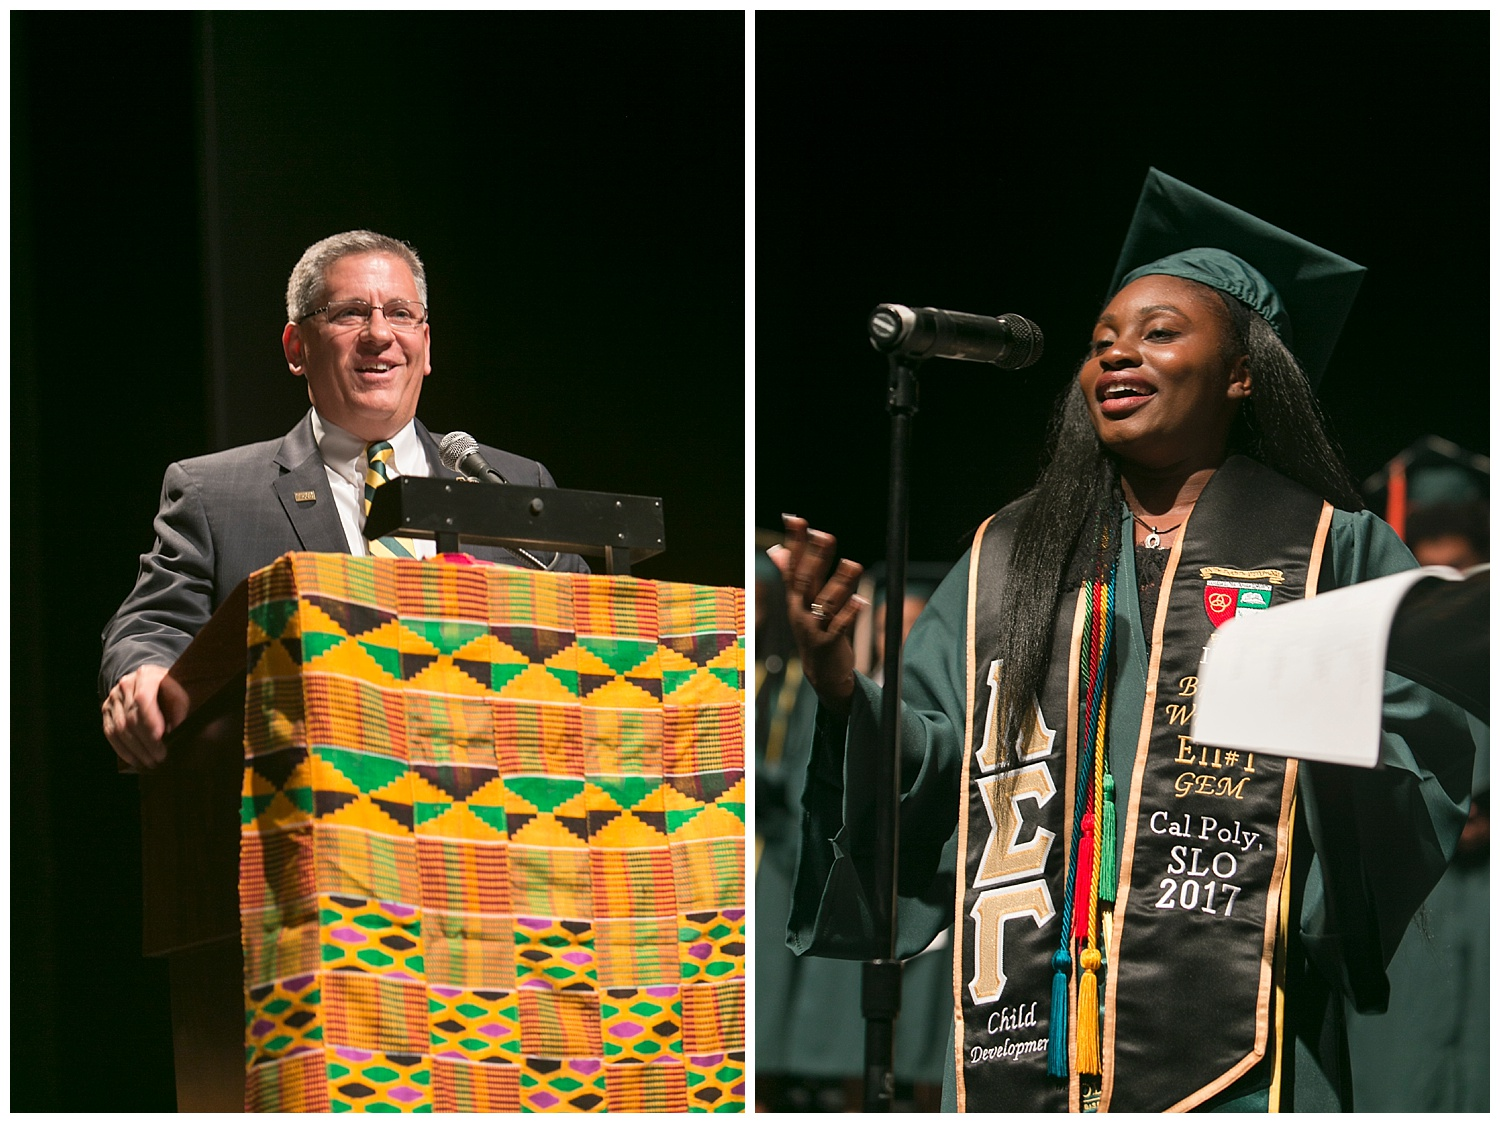 Cal Poly Black Commencement 2017_Renoda Campbell Photography_Special Events photographer_San Luis Obispo-9239.jpg